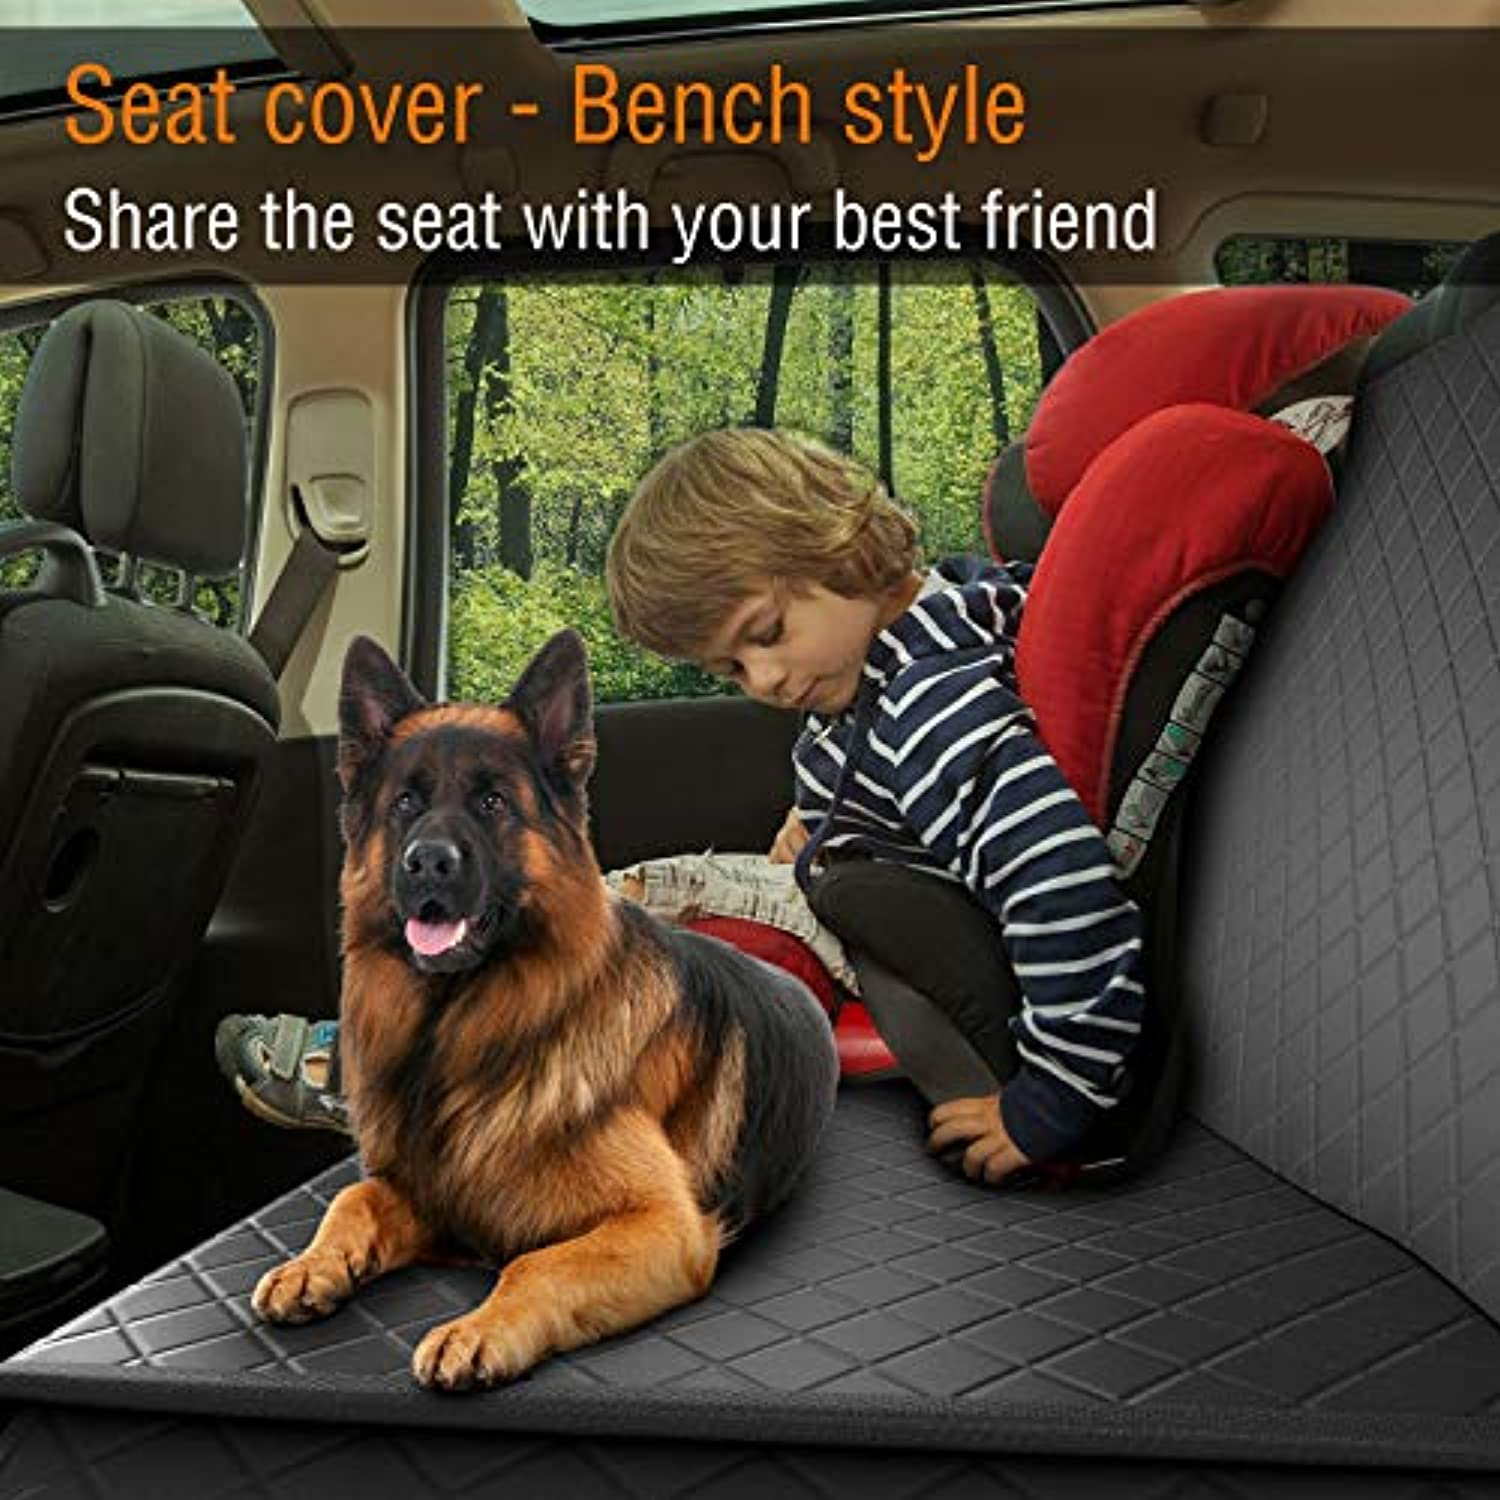 Classier: Buy Active Pets Dog Back Seat Cover Protector Waterproof Scratchproof Nonslip Hammock for Dogs Backseat Protection Against Dirt and Pet Fur Durable Pets Seat Covers for Cars & SUVs